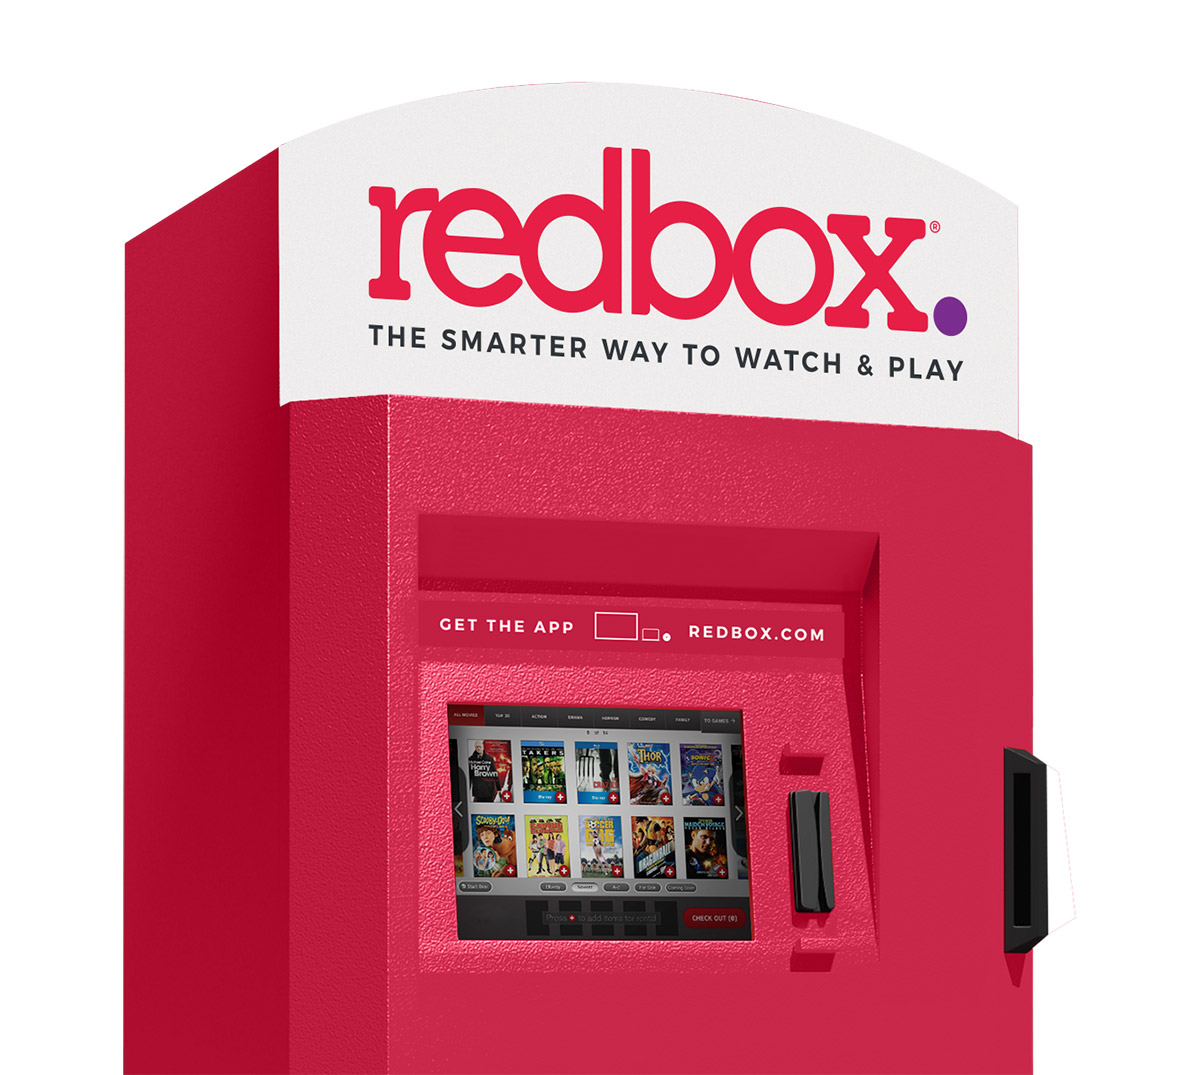 Next week's T-Mobile Tuesday deals will include free Redbox